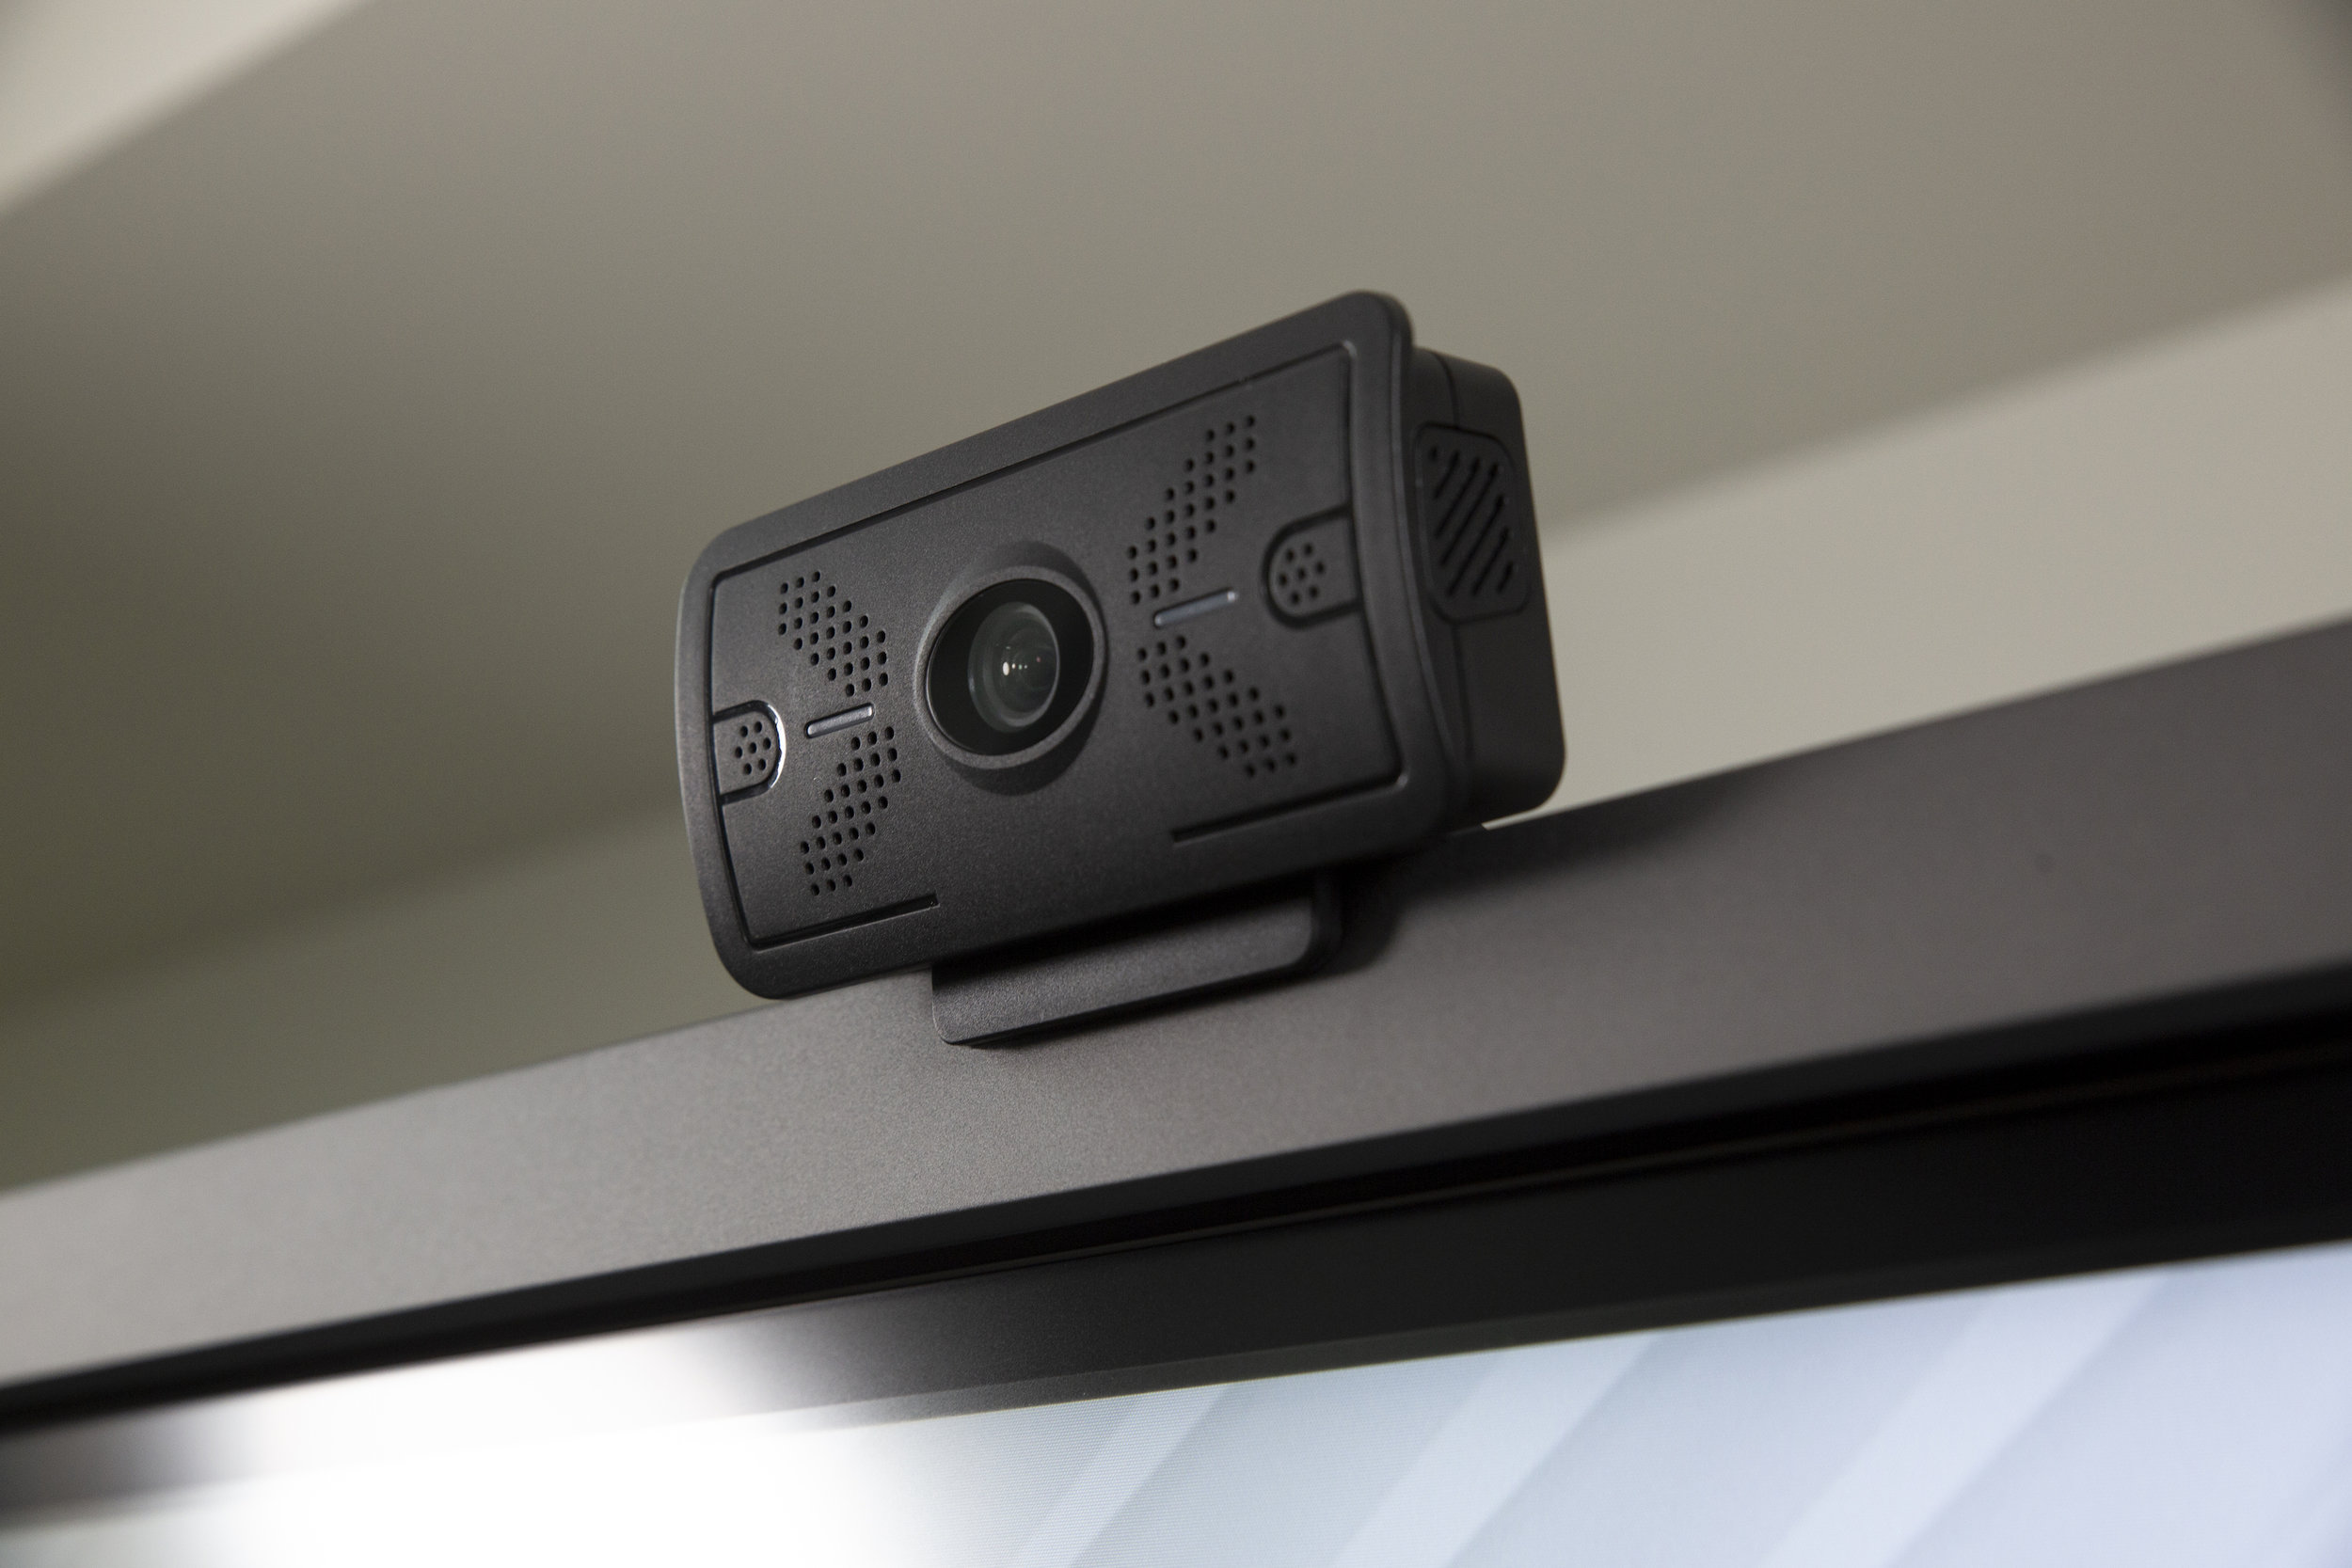 Discover our high definition cameras. - Our conference cameras offer full HD video, integrated microphones, multiple video outputs, and much more.Powerful and user-friendly, they're a great addition to your classroom.